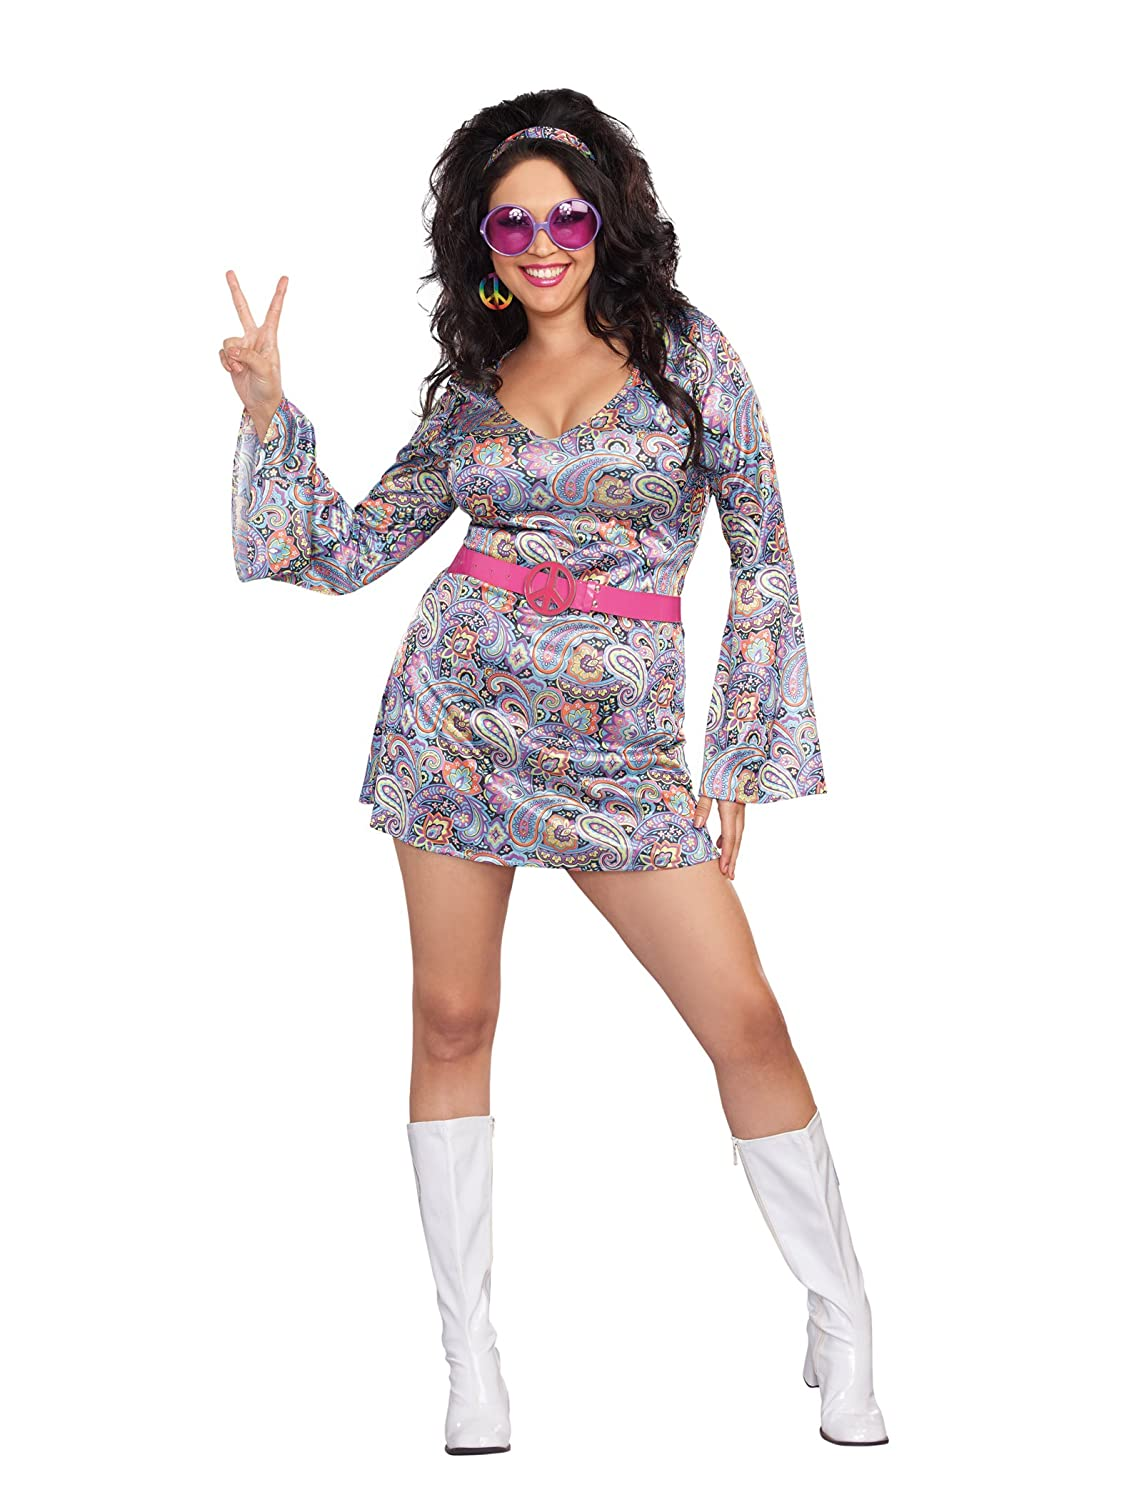 60s Costumes: Hippie, Go Go Dancer, Flower Child Dreamgirl Womens Plus-Size Love-Fest Costume $21.94 AT vintagedancer.com